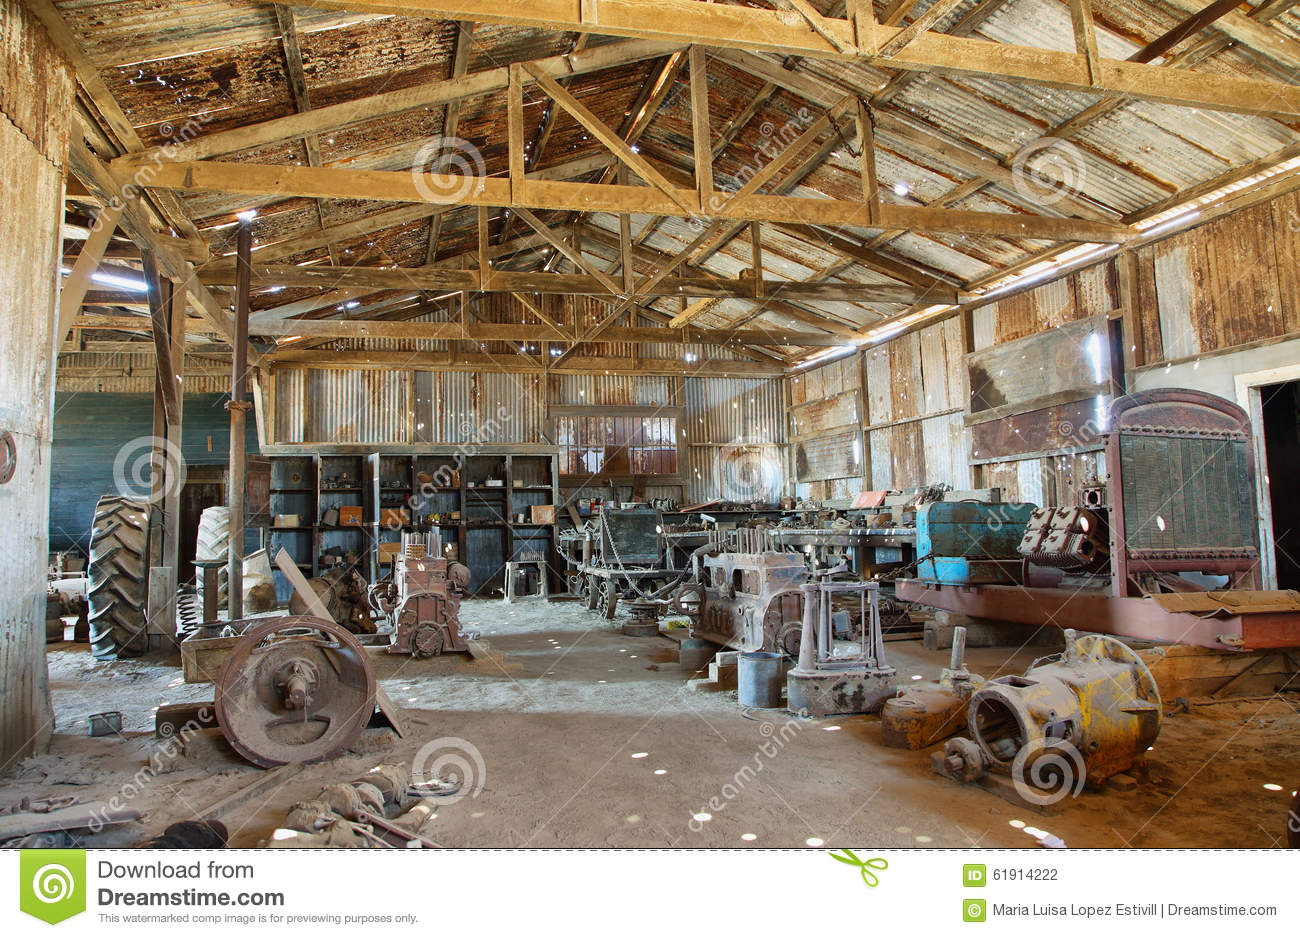 Old equipment and tools inside a building of Humberstone, Chile